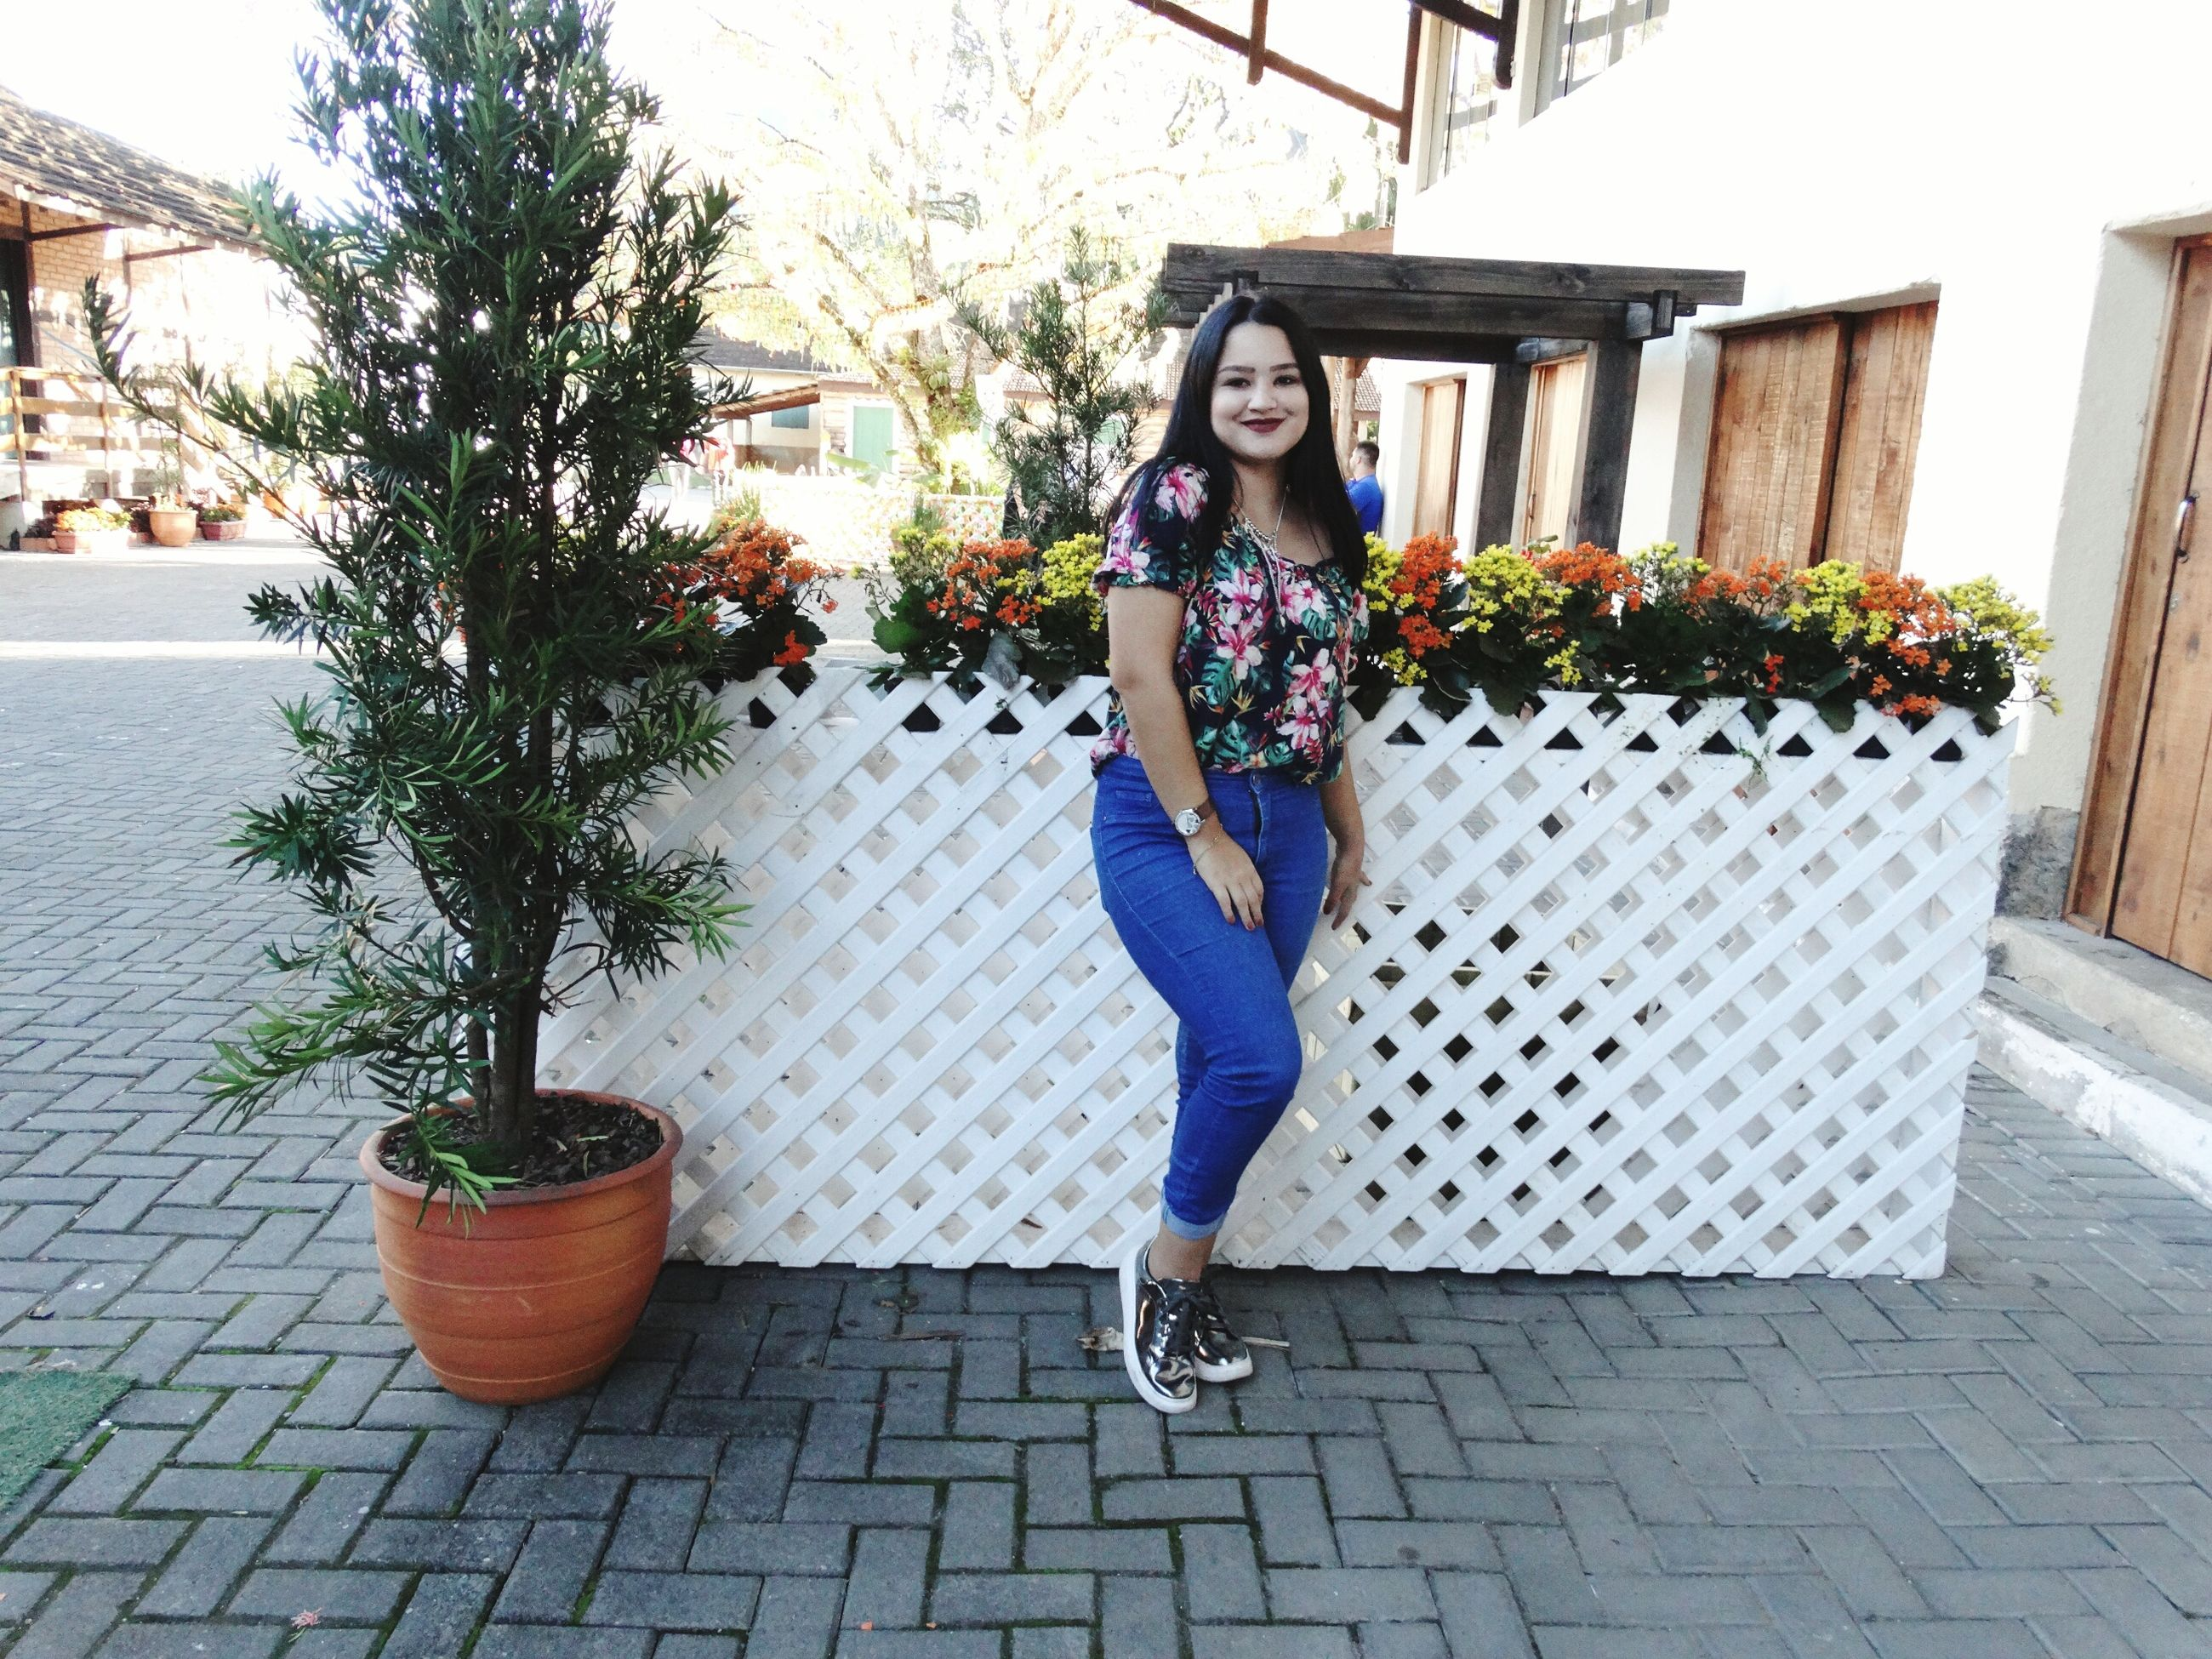 full length, one person, young adult, potted plant, outdoors, young women, beautiful woman, smiling, plant, looking at camera, front view, flower, day, portrait, real people, lifestyles, standing, growth, posing, architecture, tree, adult, people